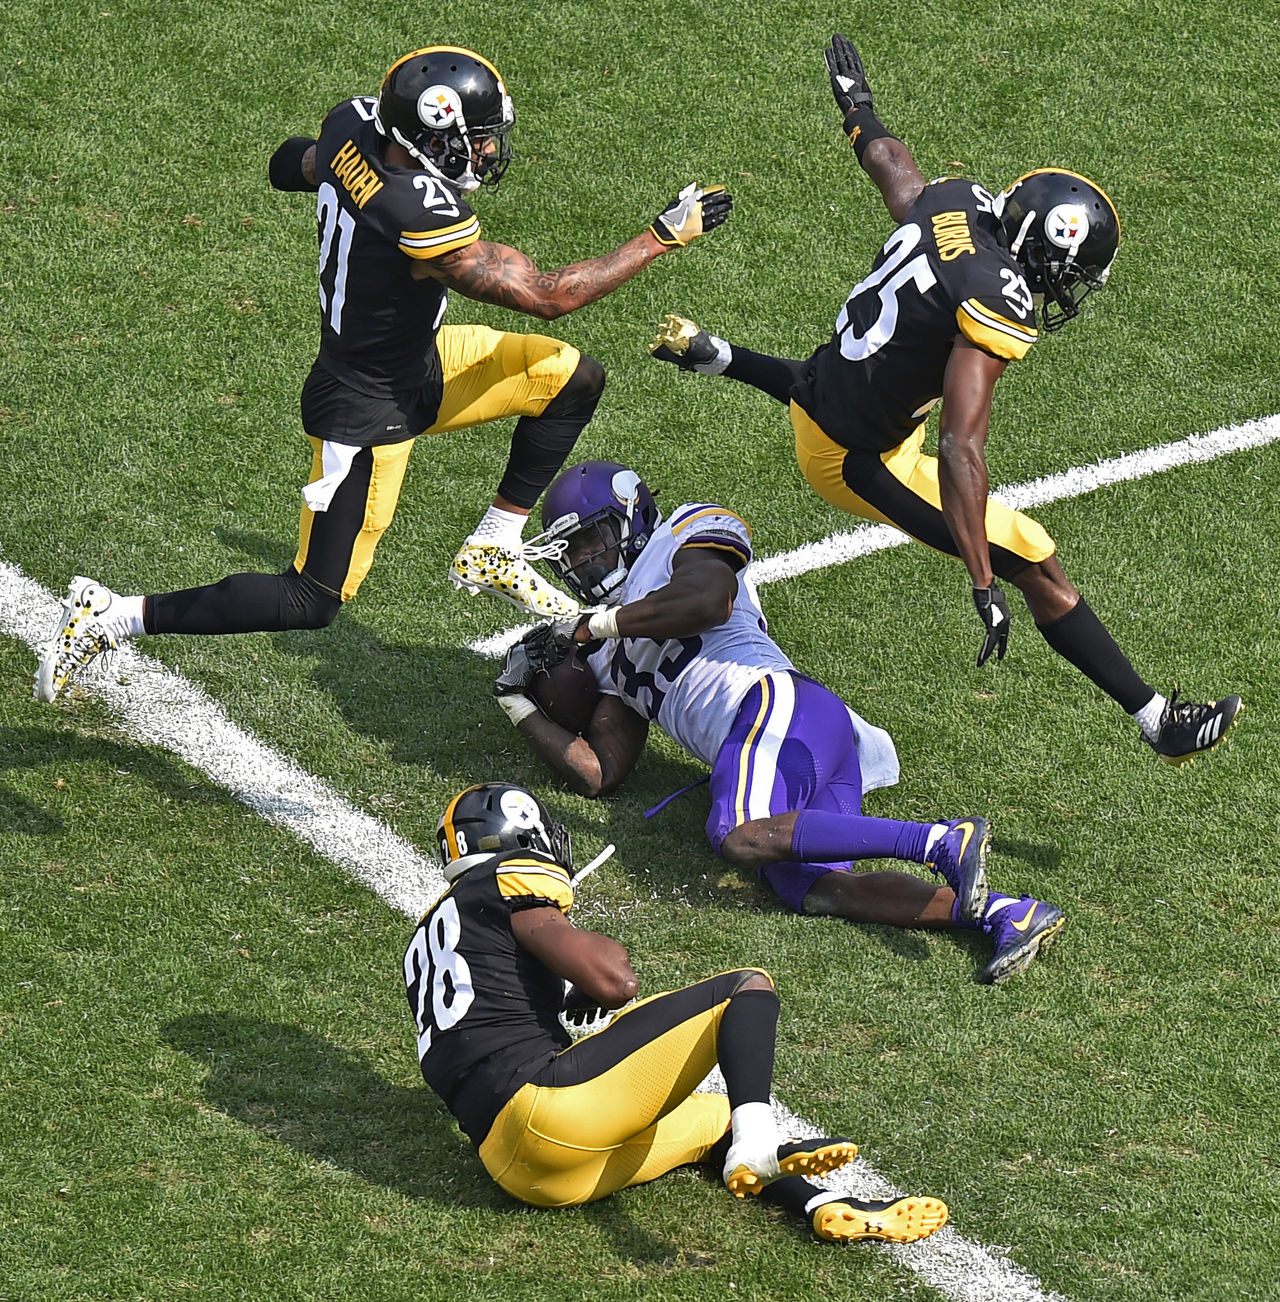 Pittsburgh Steelers cornerback Joe Haden (21) and Artie Burns (25) leap over Minnesota Vikings running back Dalvin Cook (33) after he scored on a pass play from quarterback Case Keenum during the second half of an NFL football game in Pittsburgh, Sunday, Sept. 17, 2017.